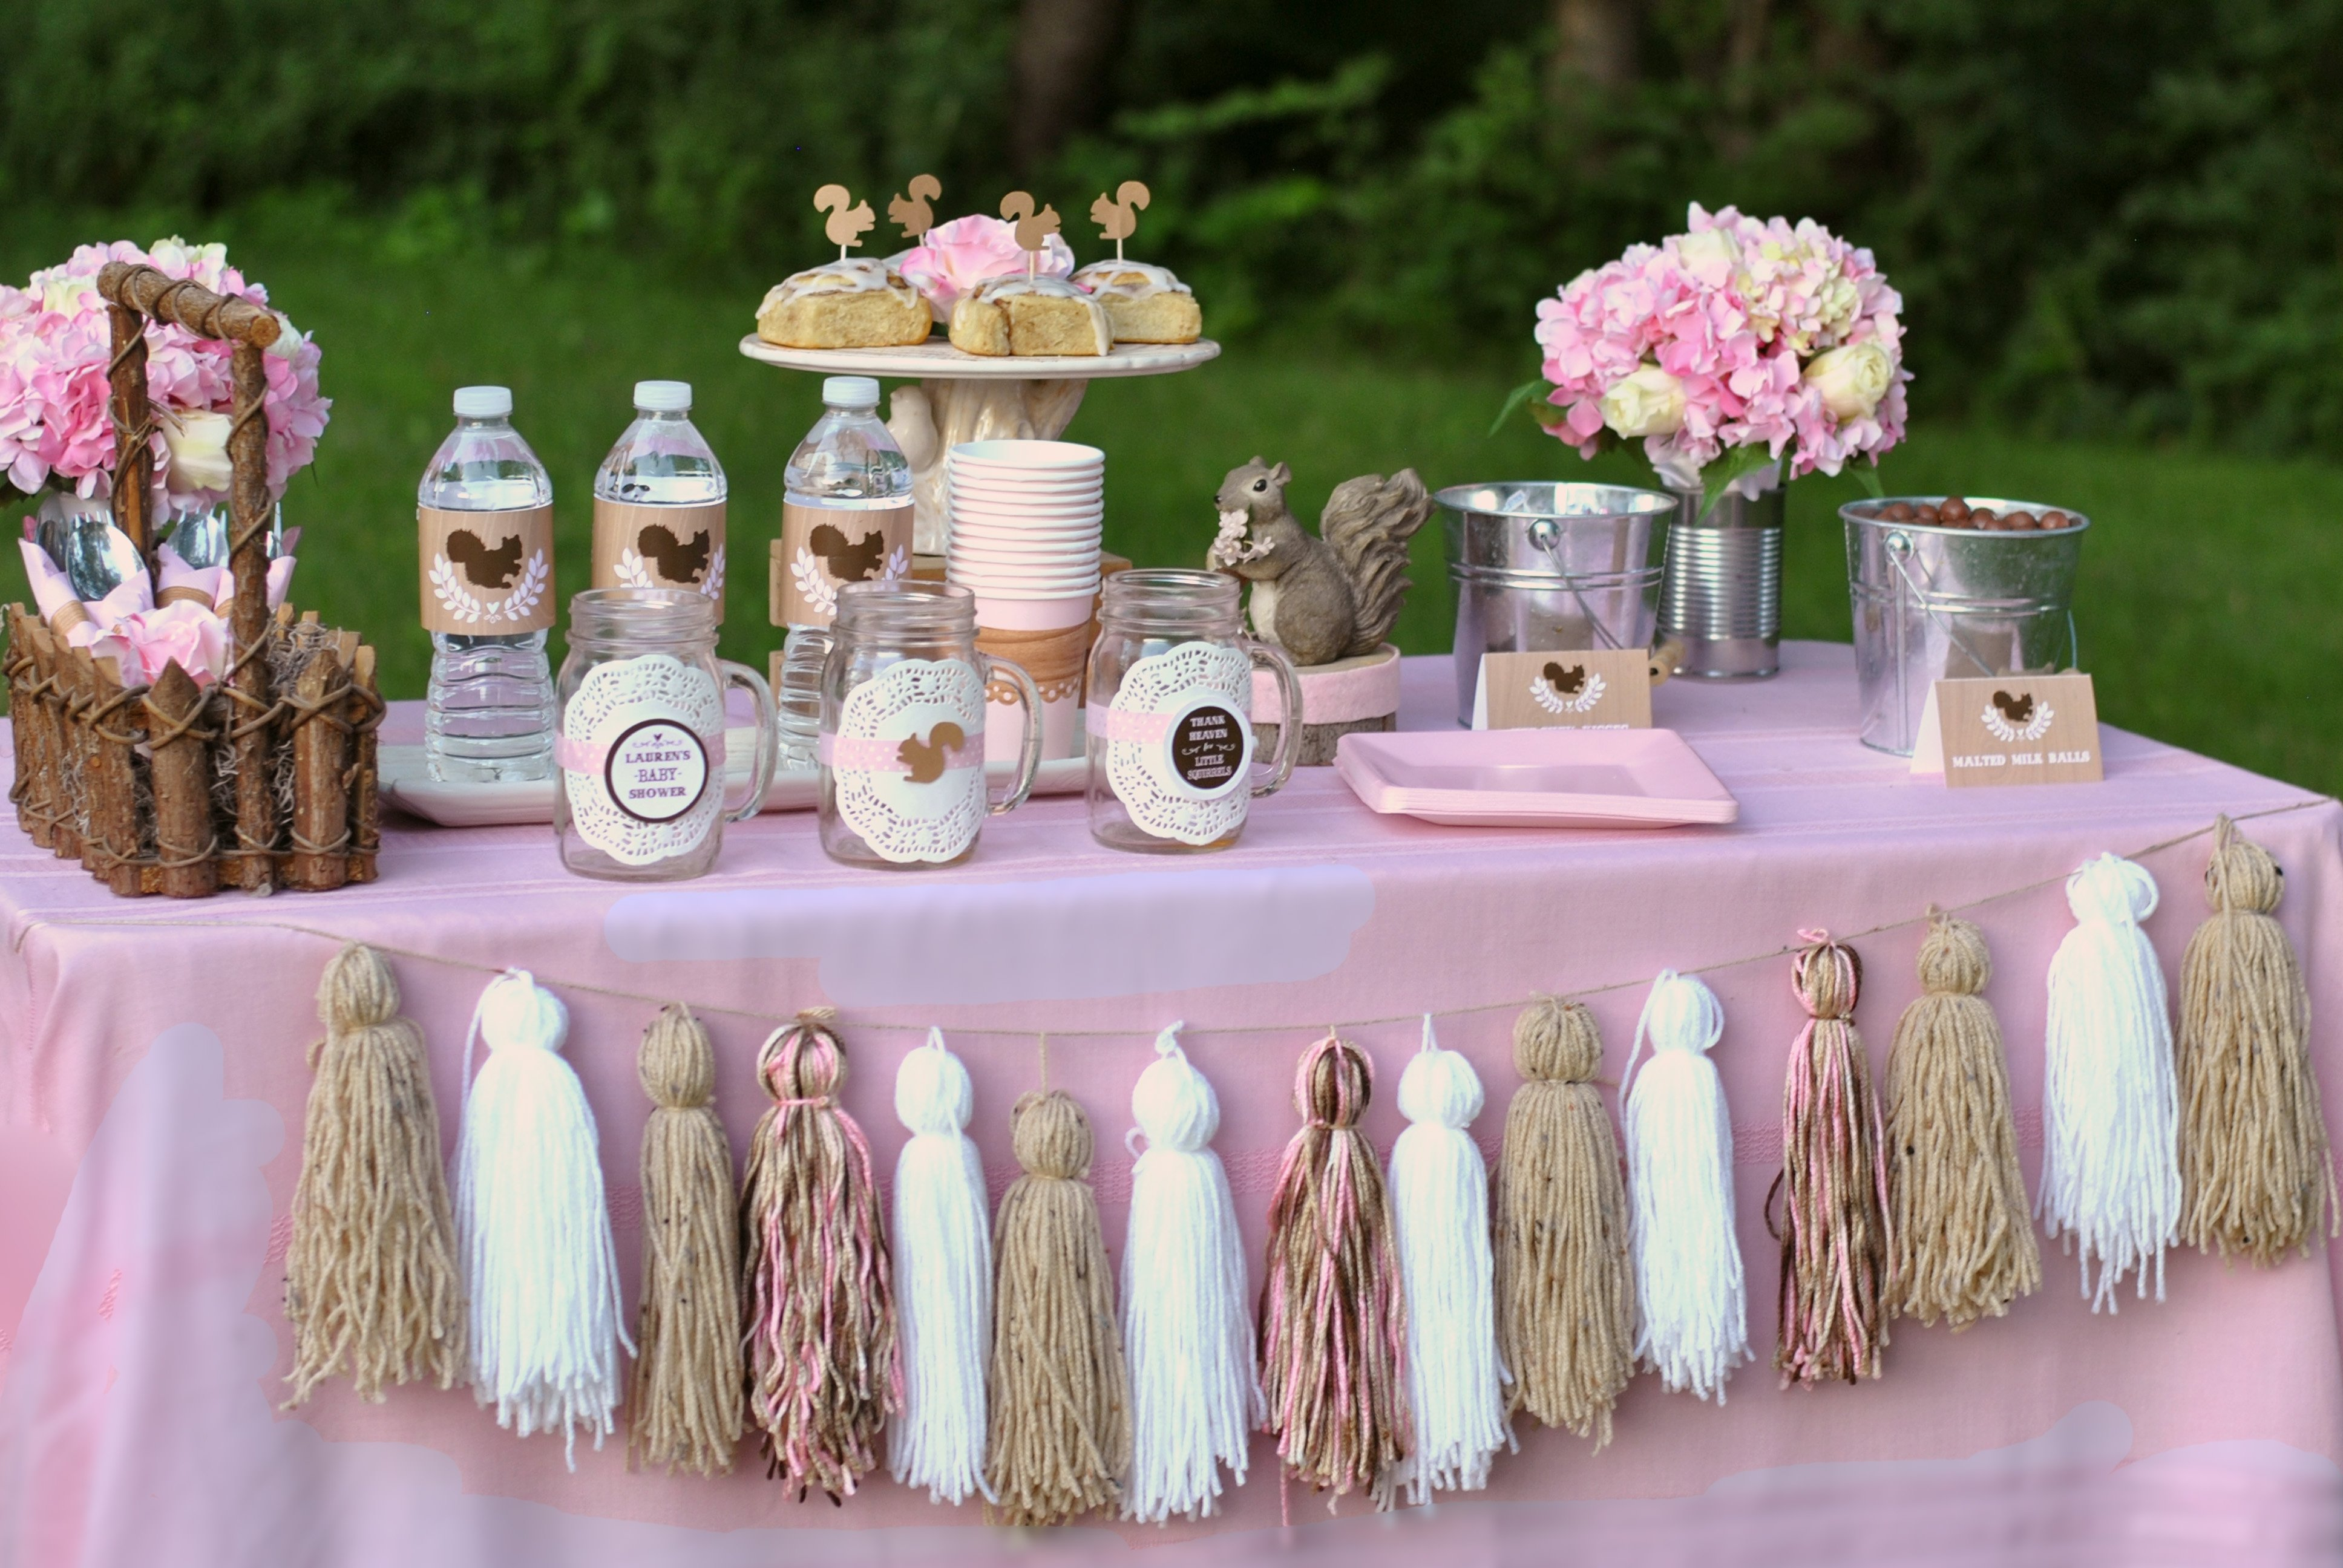 10 Unique Girl Baby Shower Decorating Ideas baby shower theme ideas for girl omega center ideas for baby 1 2020